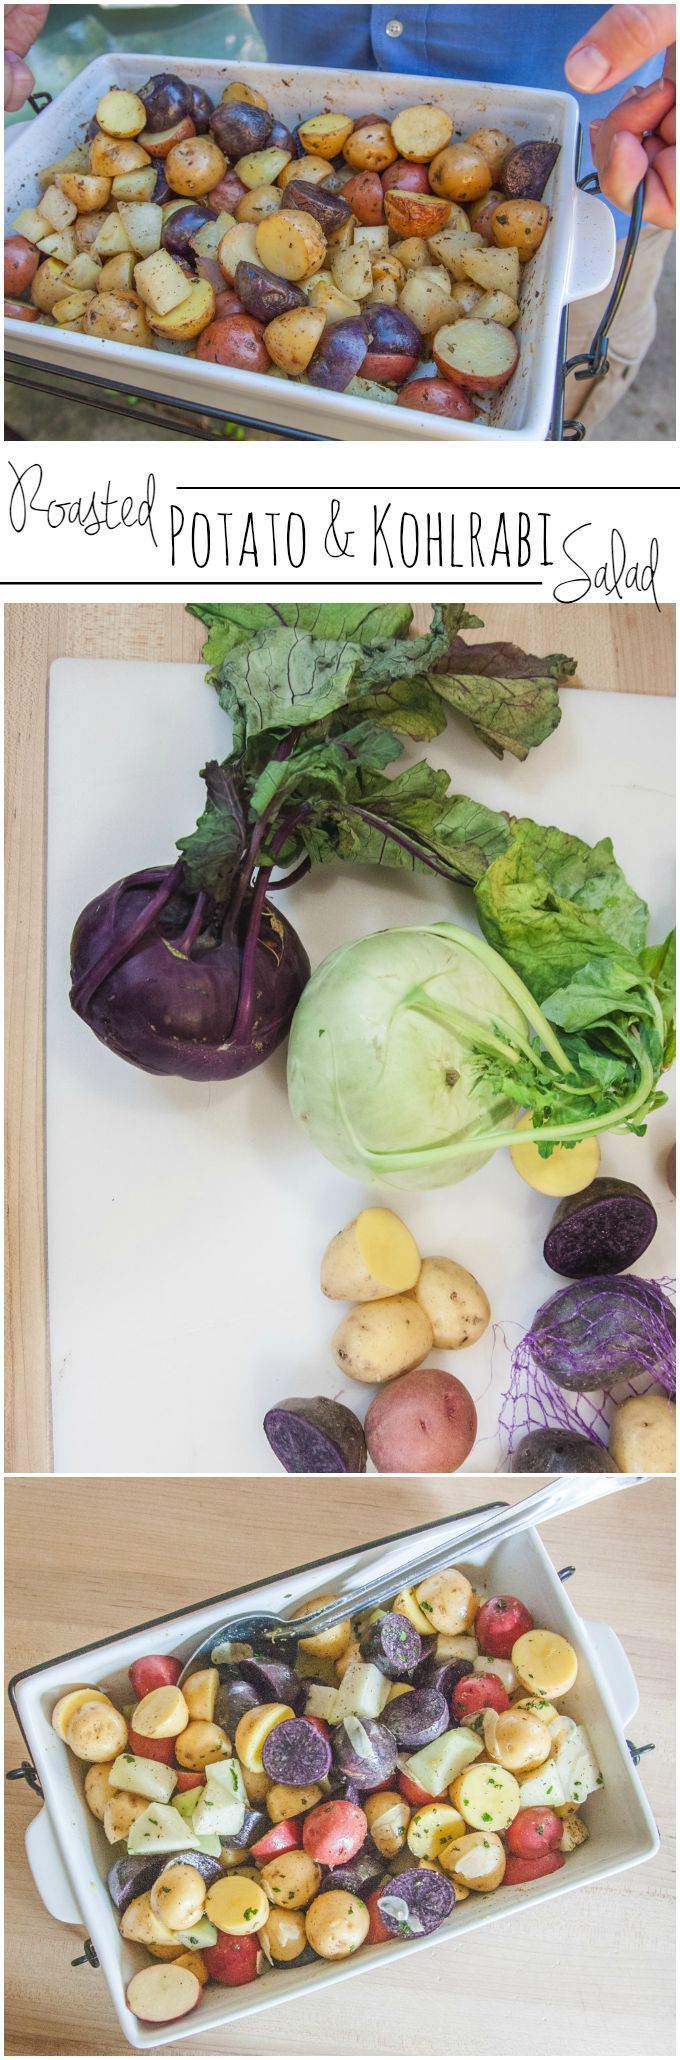 Roasted potato and kohlrabi salad recipe from @sweetphi